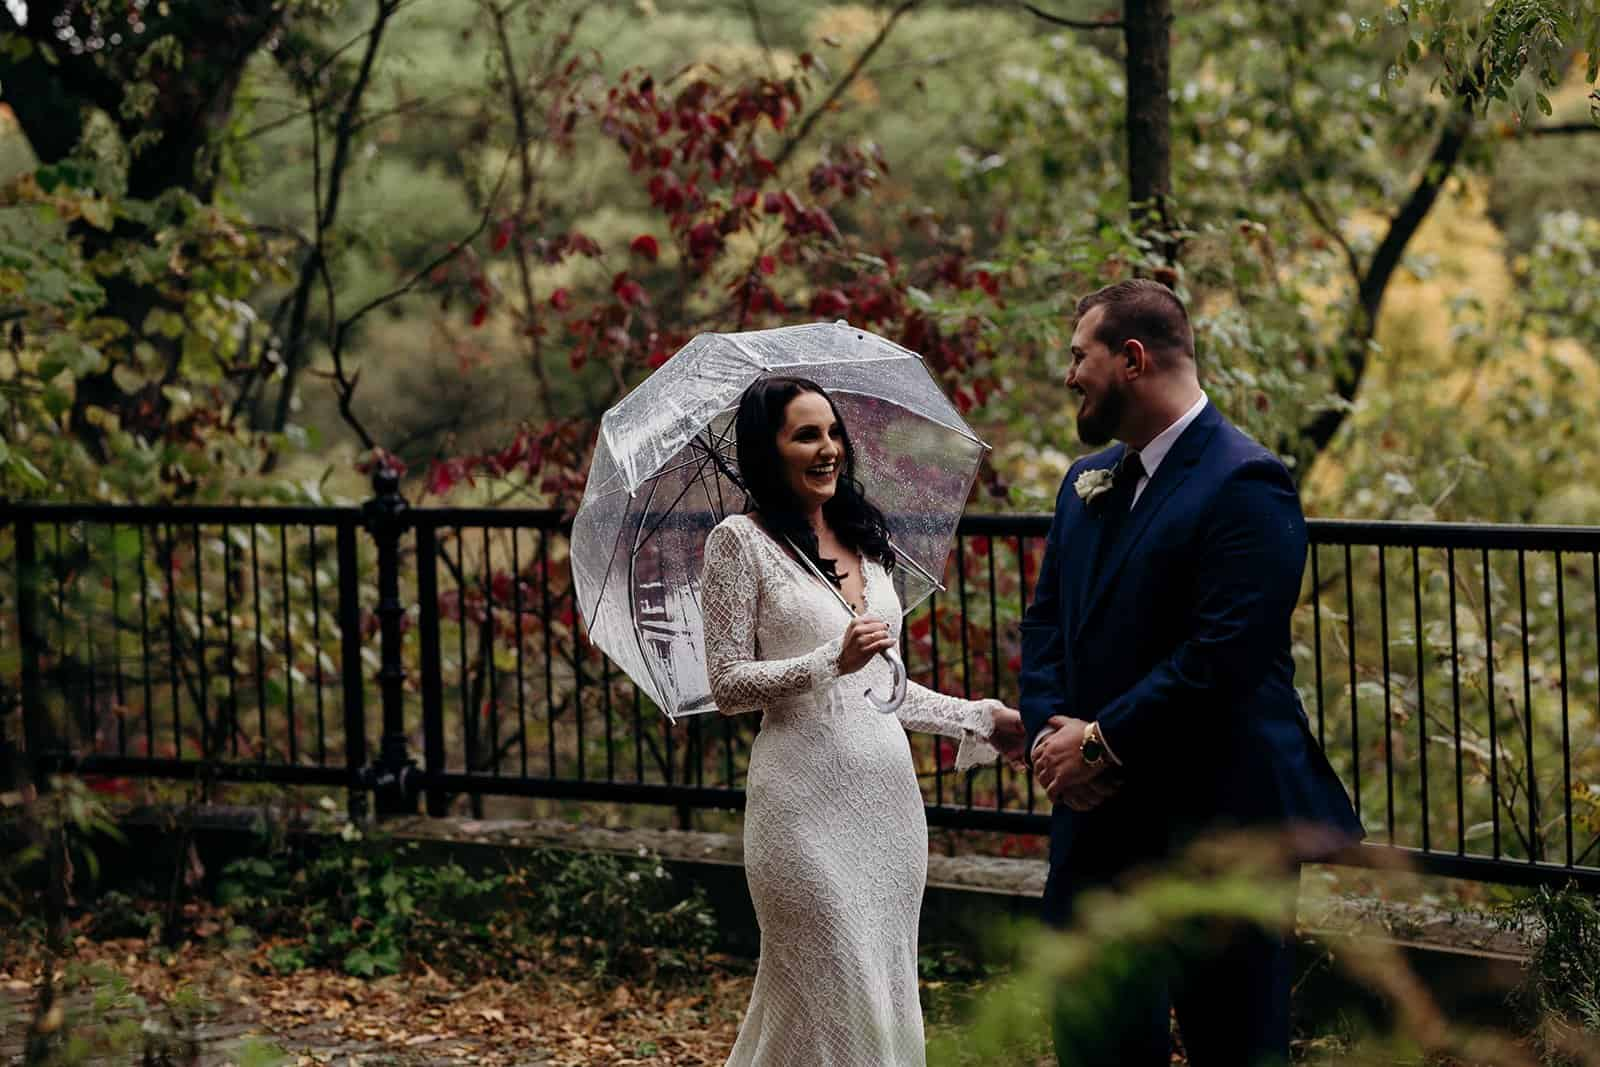 Husband looks in awe at his new wife during first look